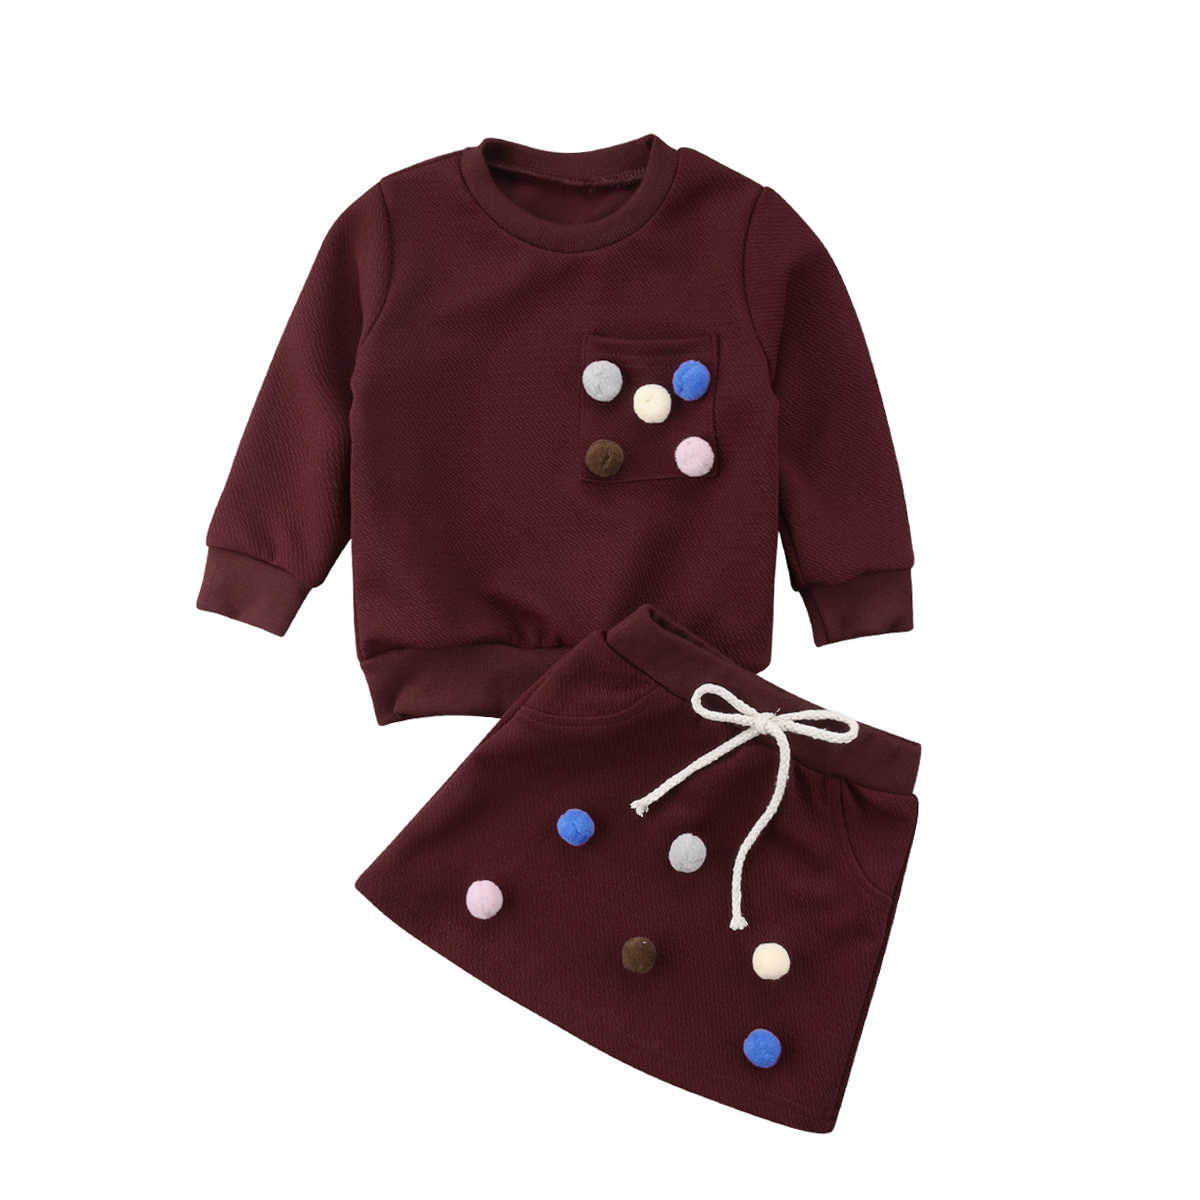 3e853ab708 2019 Emmababy New Hot Toddler Kids Baby Girls Long Sleeve Outfits Set Shirt  +Short Skirt